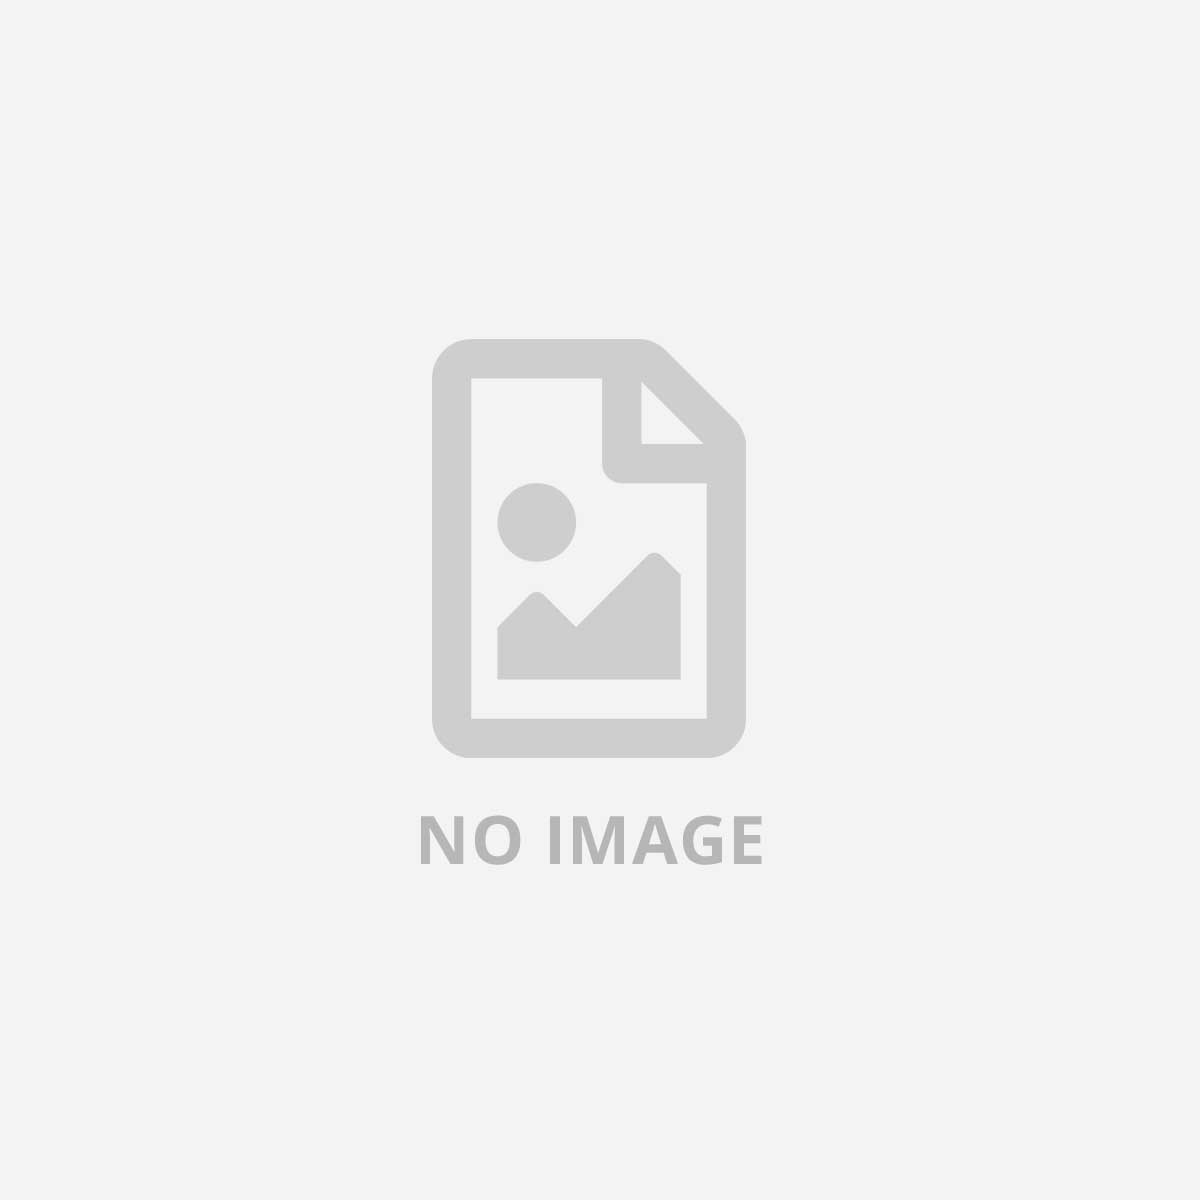 CONCEPTRONIC BOX HDD 2 5  USB 2.0 NERO